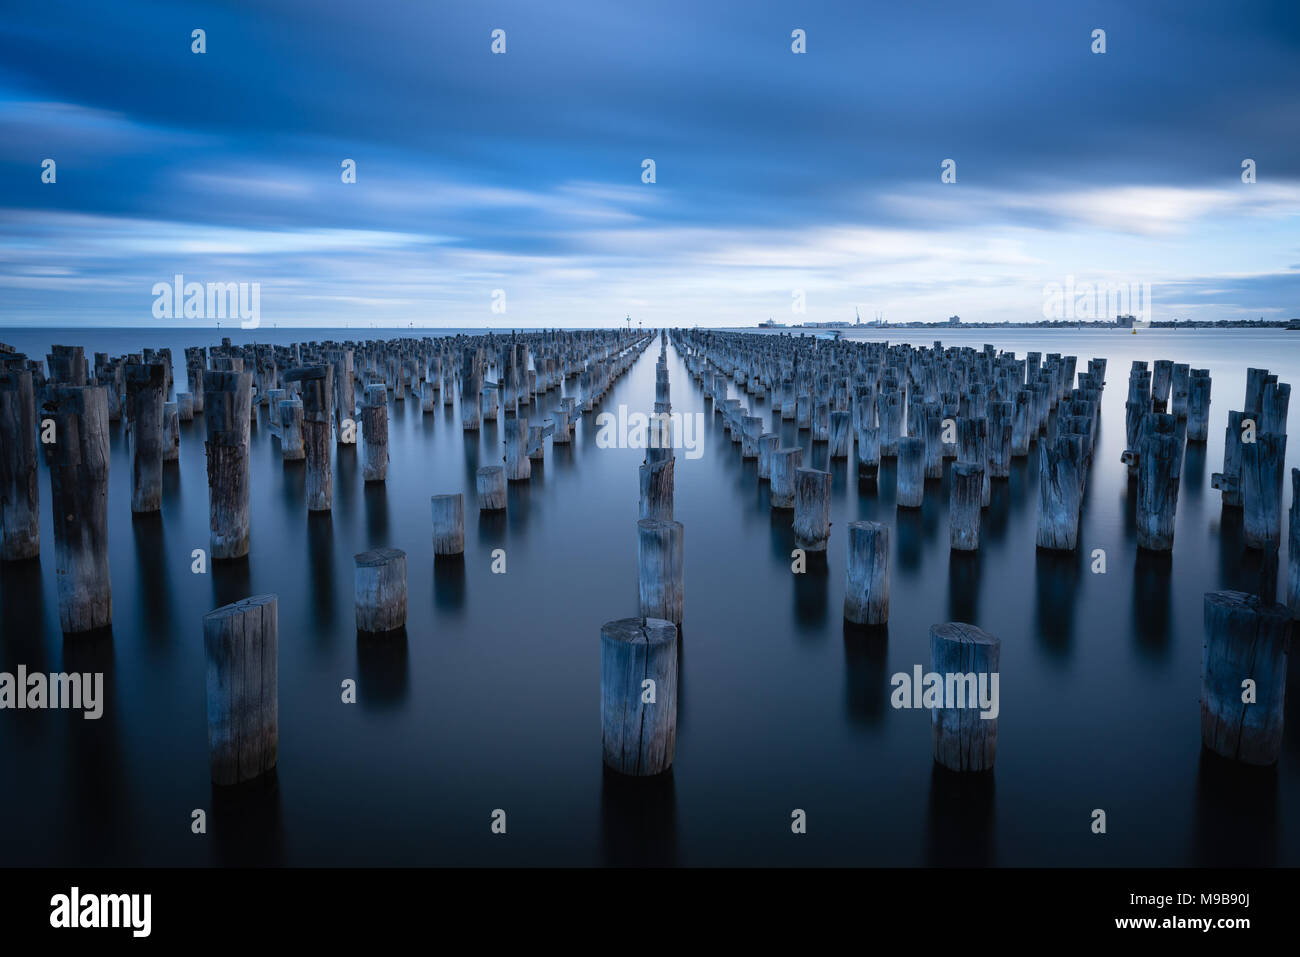 Rows of pylons at Princes Pier, Port Melbourne - Stock Image